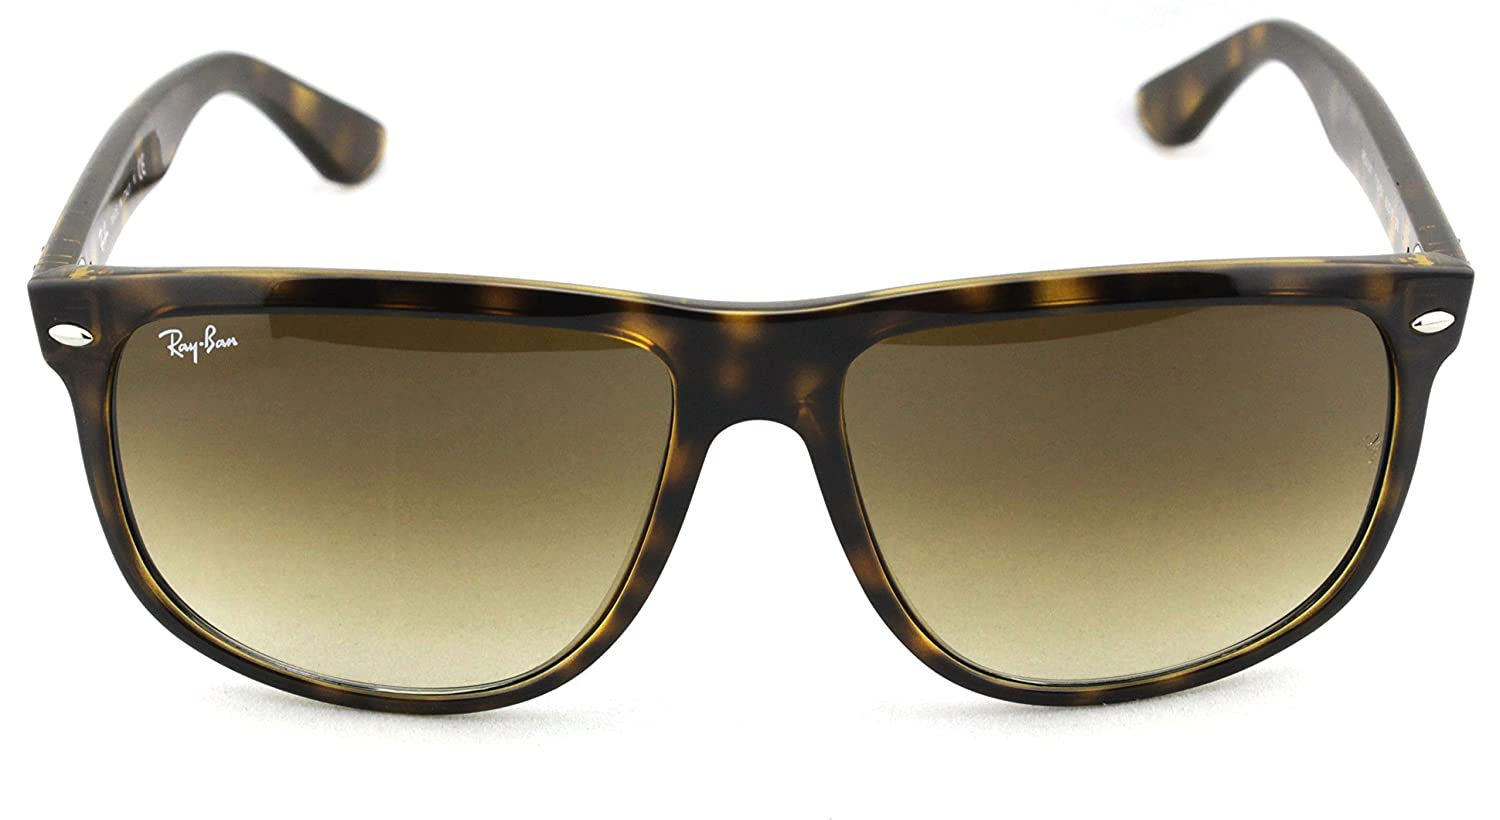 68ca3cee3c9 ... discount code for amazon ray ban rb4147 710 51 sunglasses tortoise  light brown gradient lens 56mm